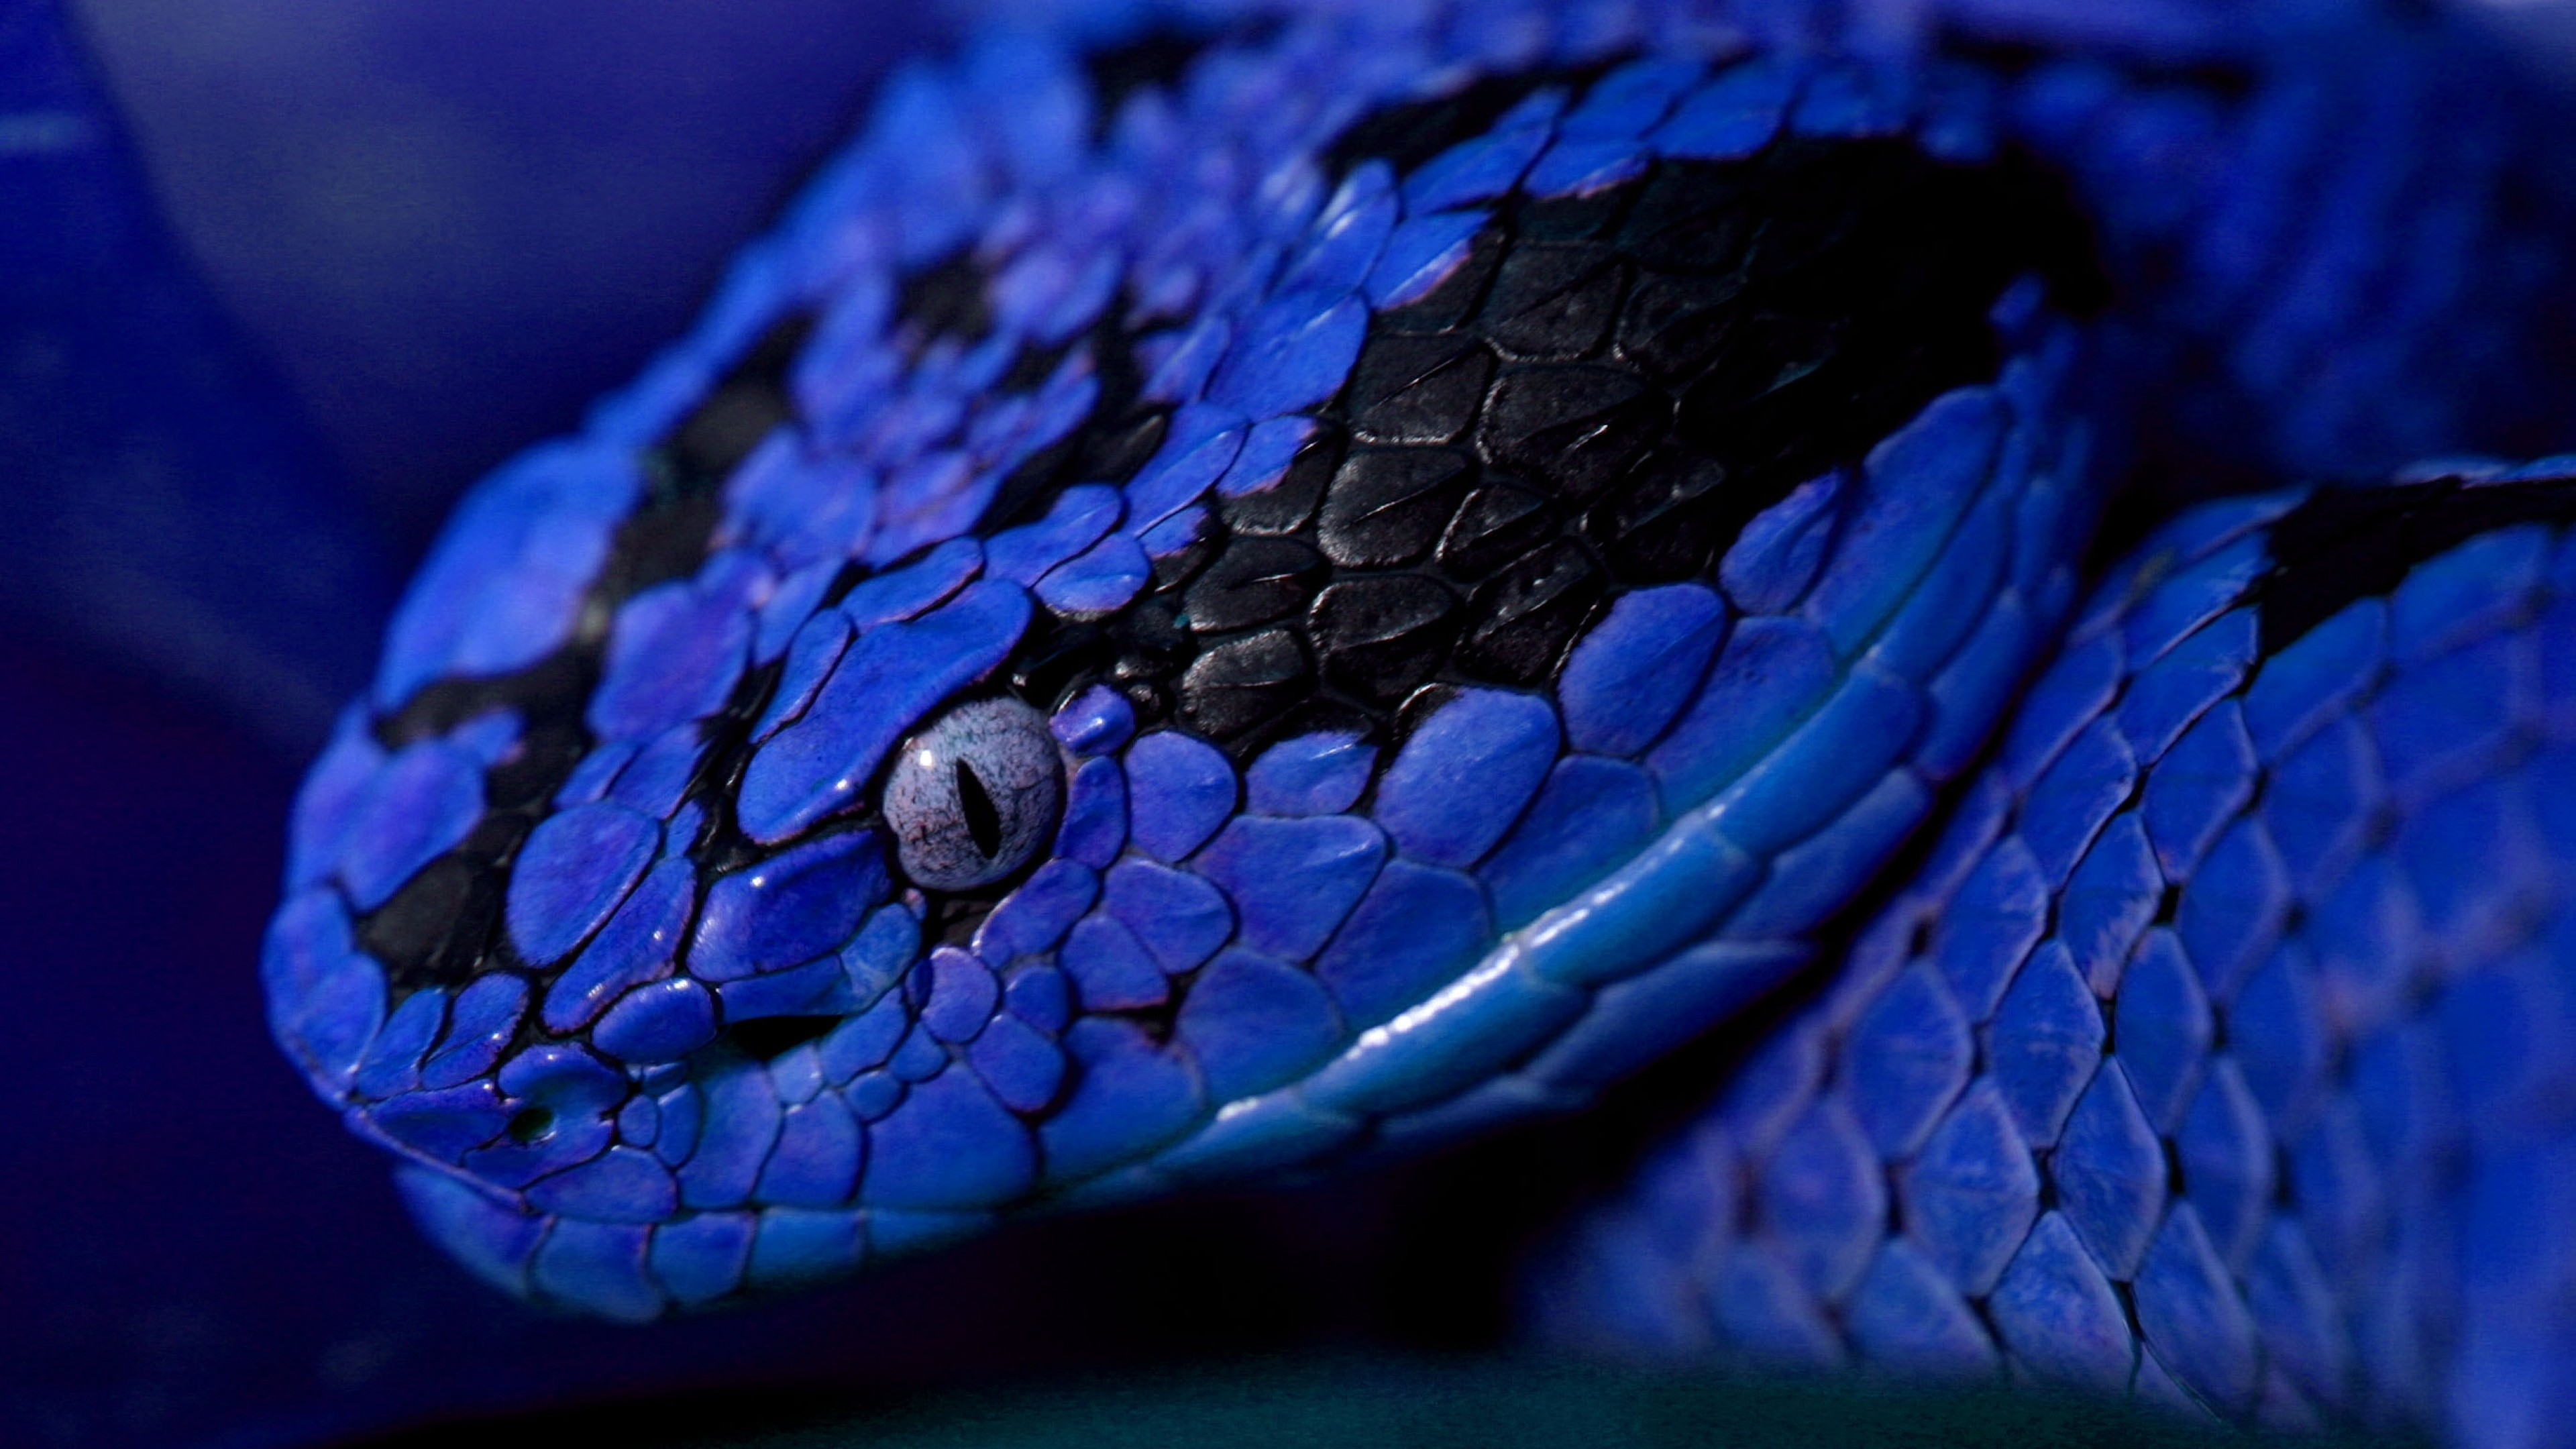 Wallpaper Snake Blue Danger Eyes Animals 10155